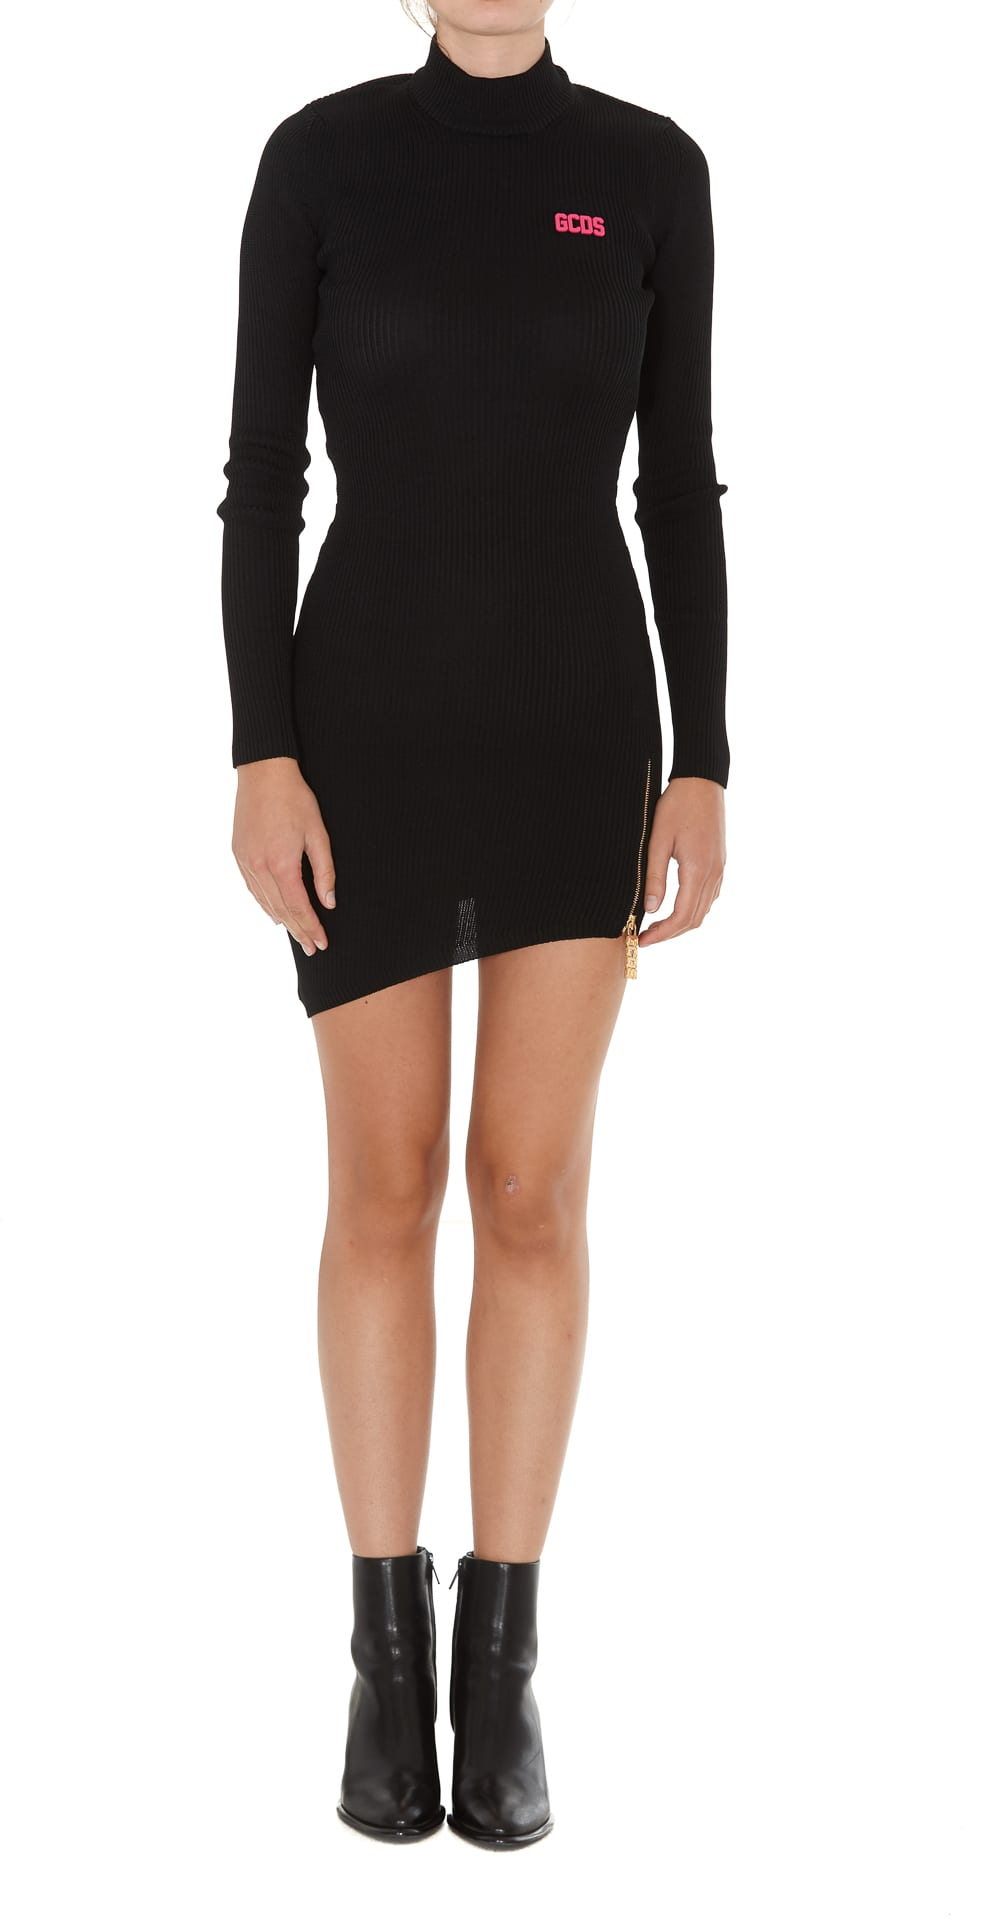 Gcds Collar Asymmetrical Dress